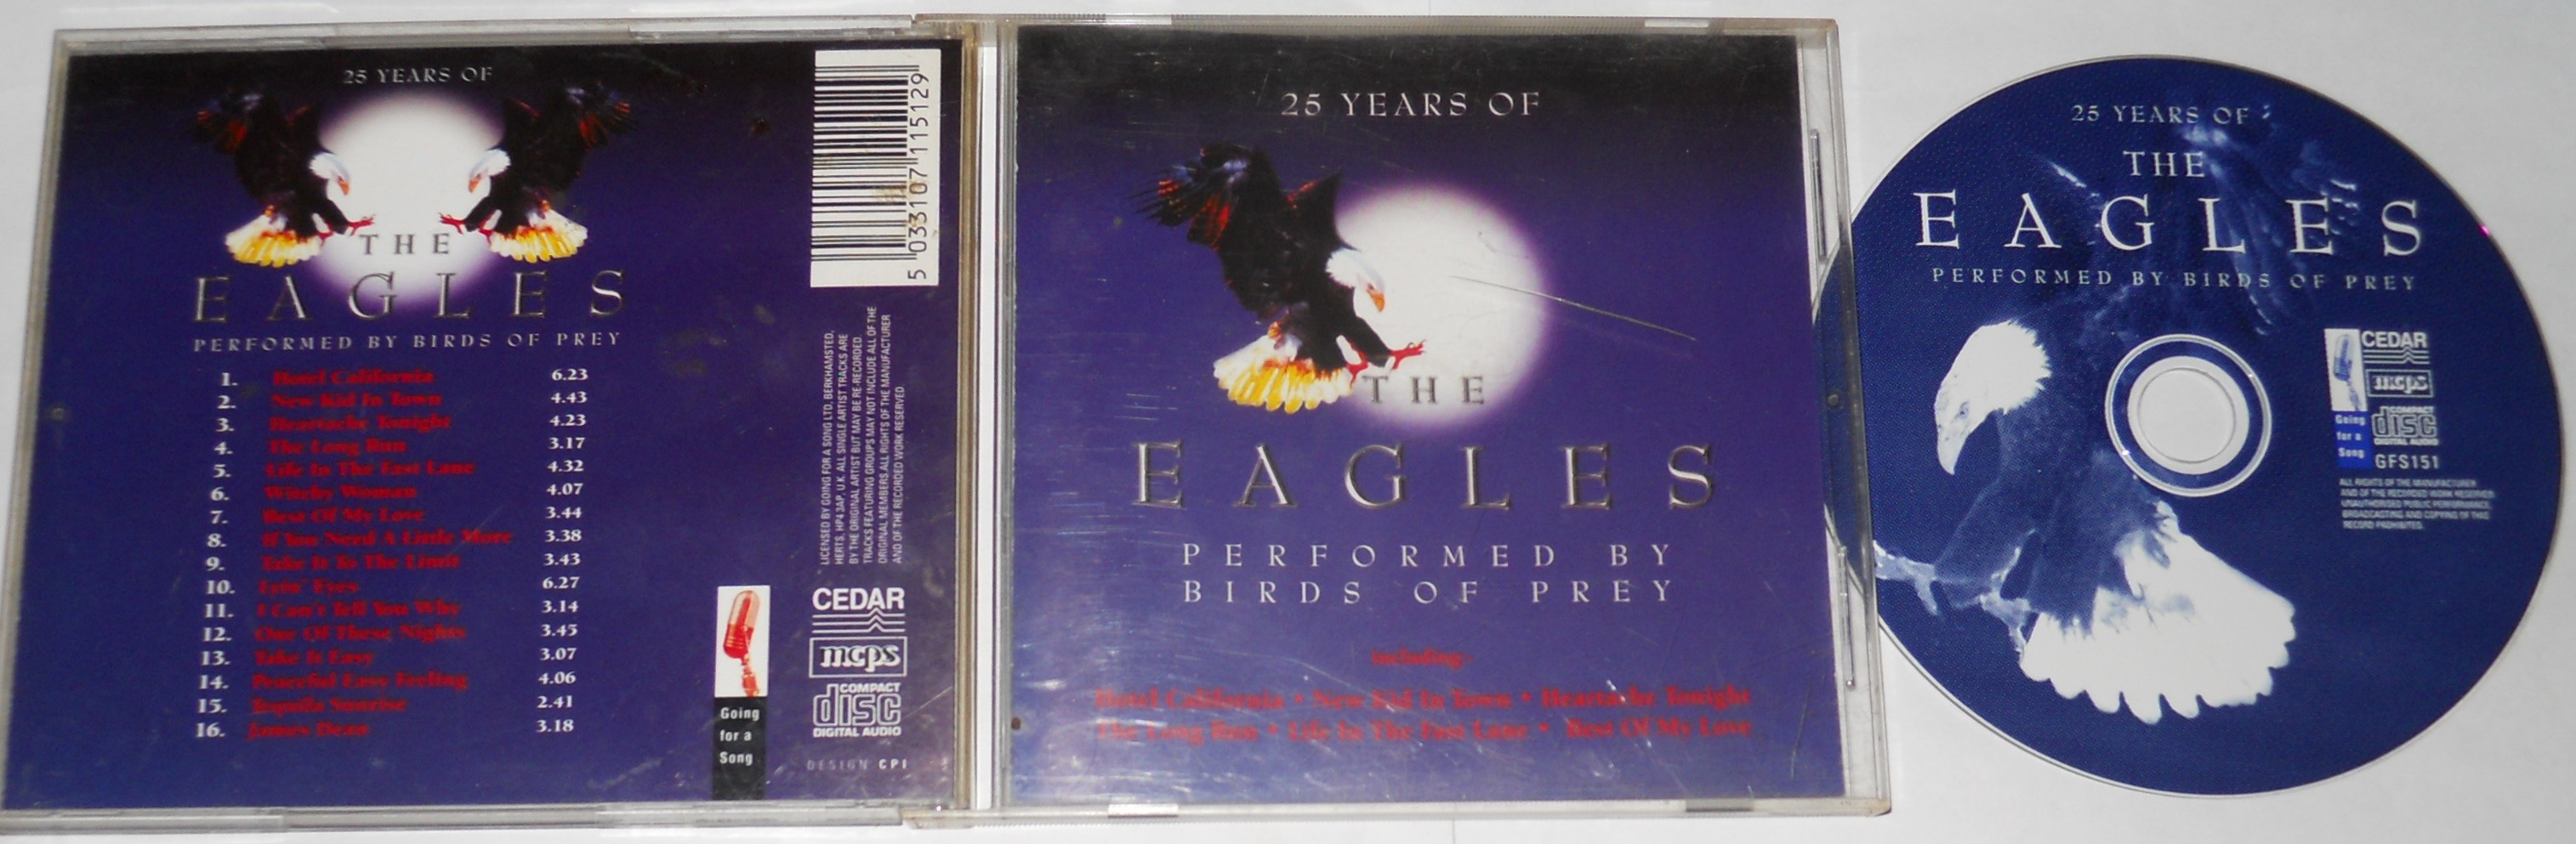 25 years of the the eagles